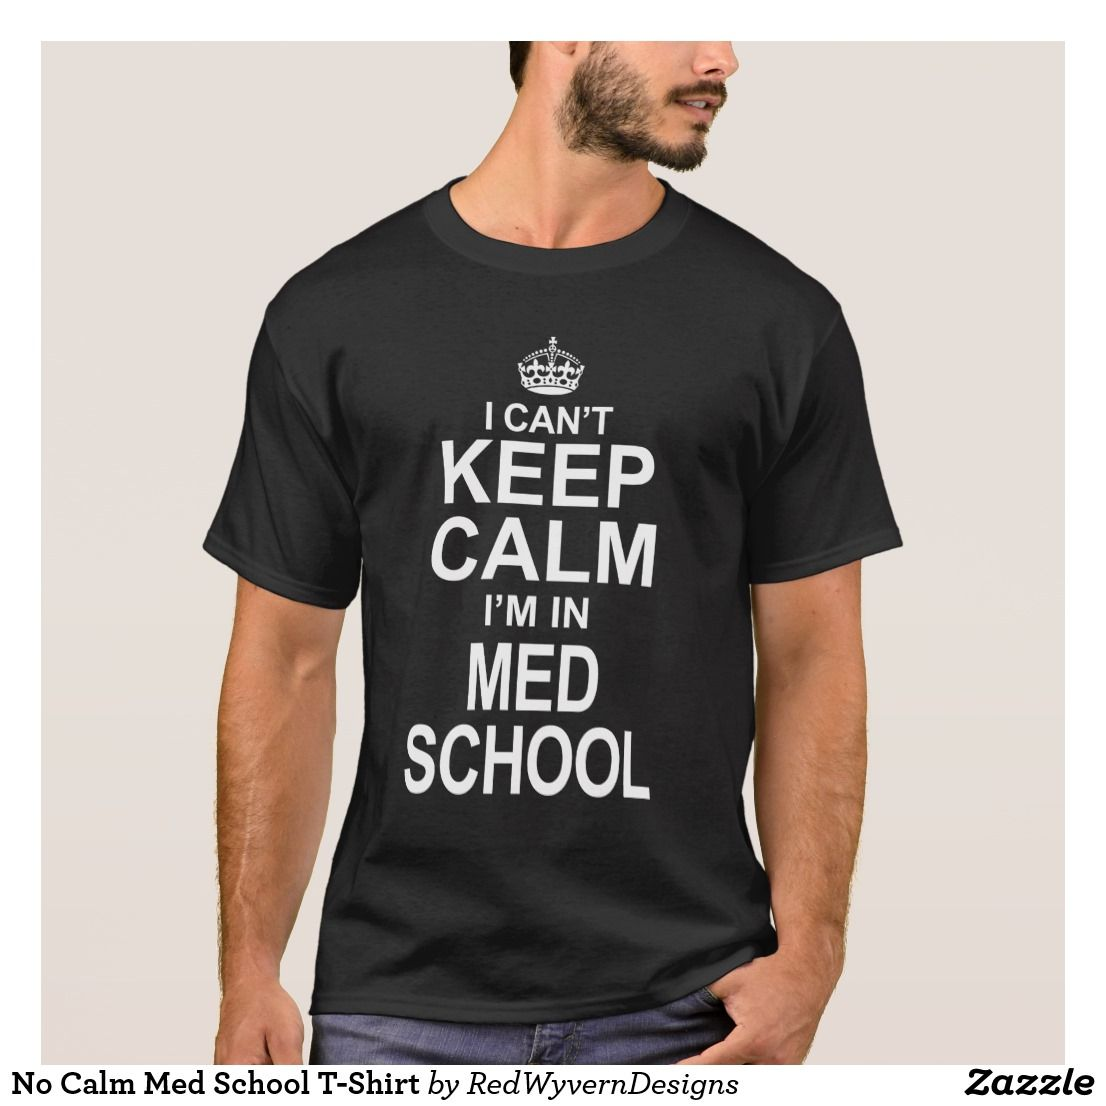 No Calm Med School T-Shirt